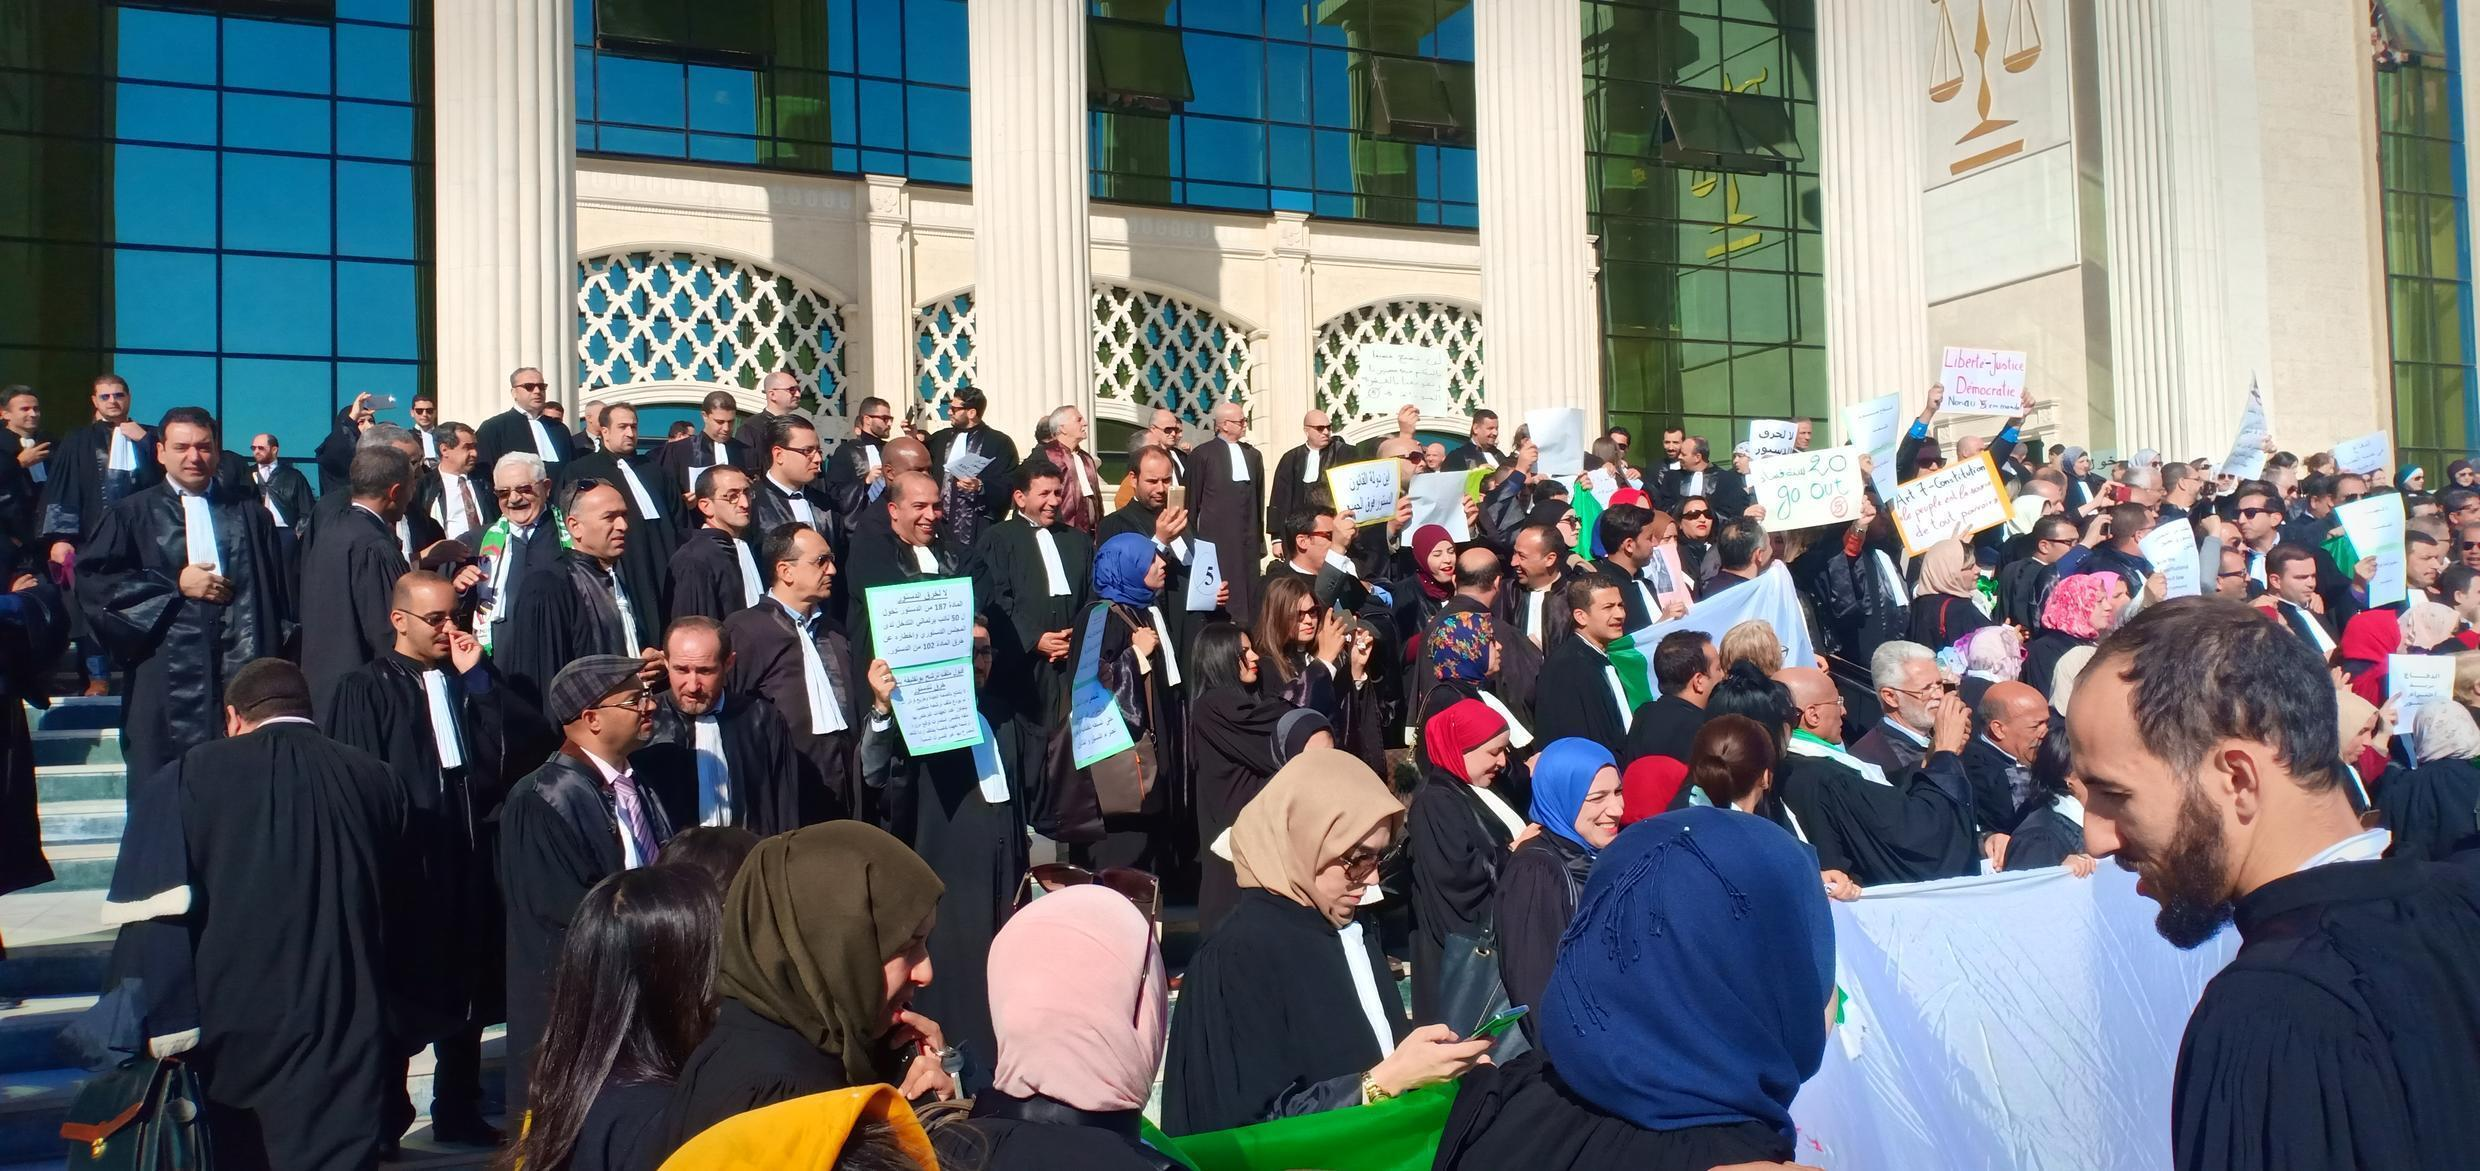 A group of lawyers gathered in protest in front of the court house in Oran on March 11. (Photo by our Observer Nadjib B.)